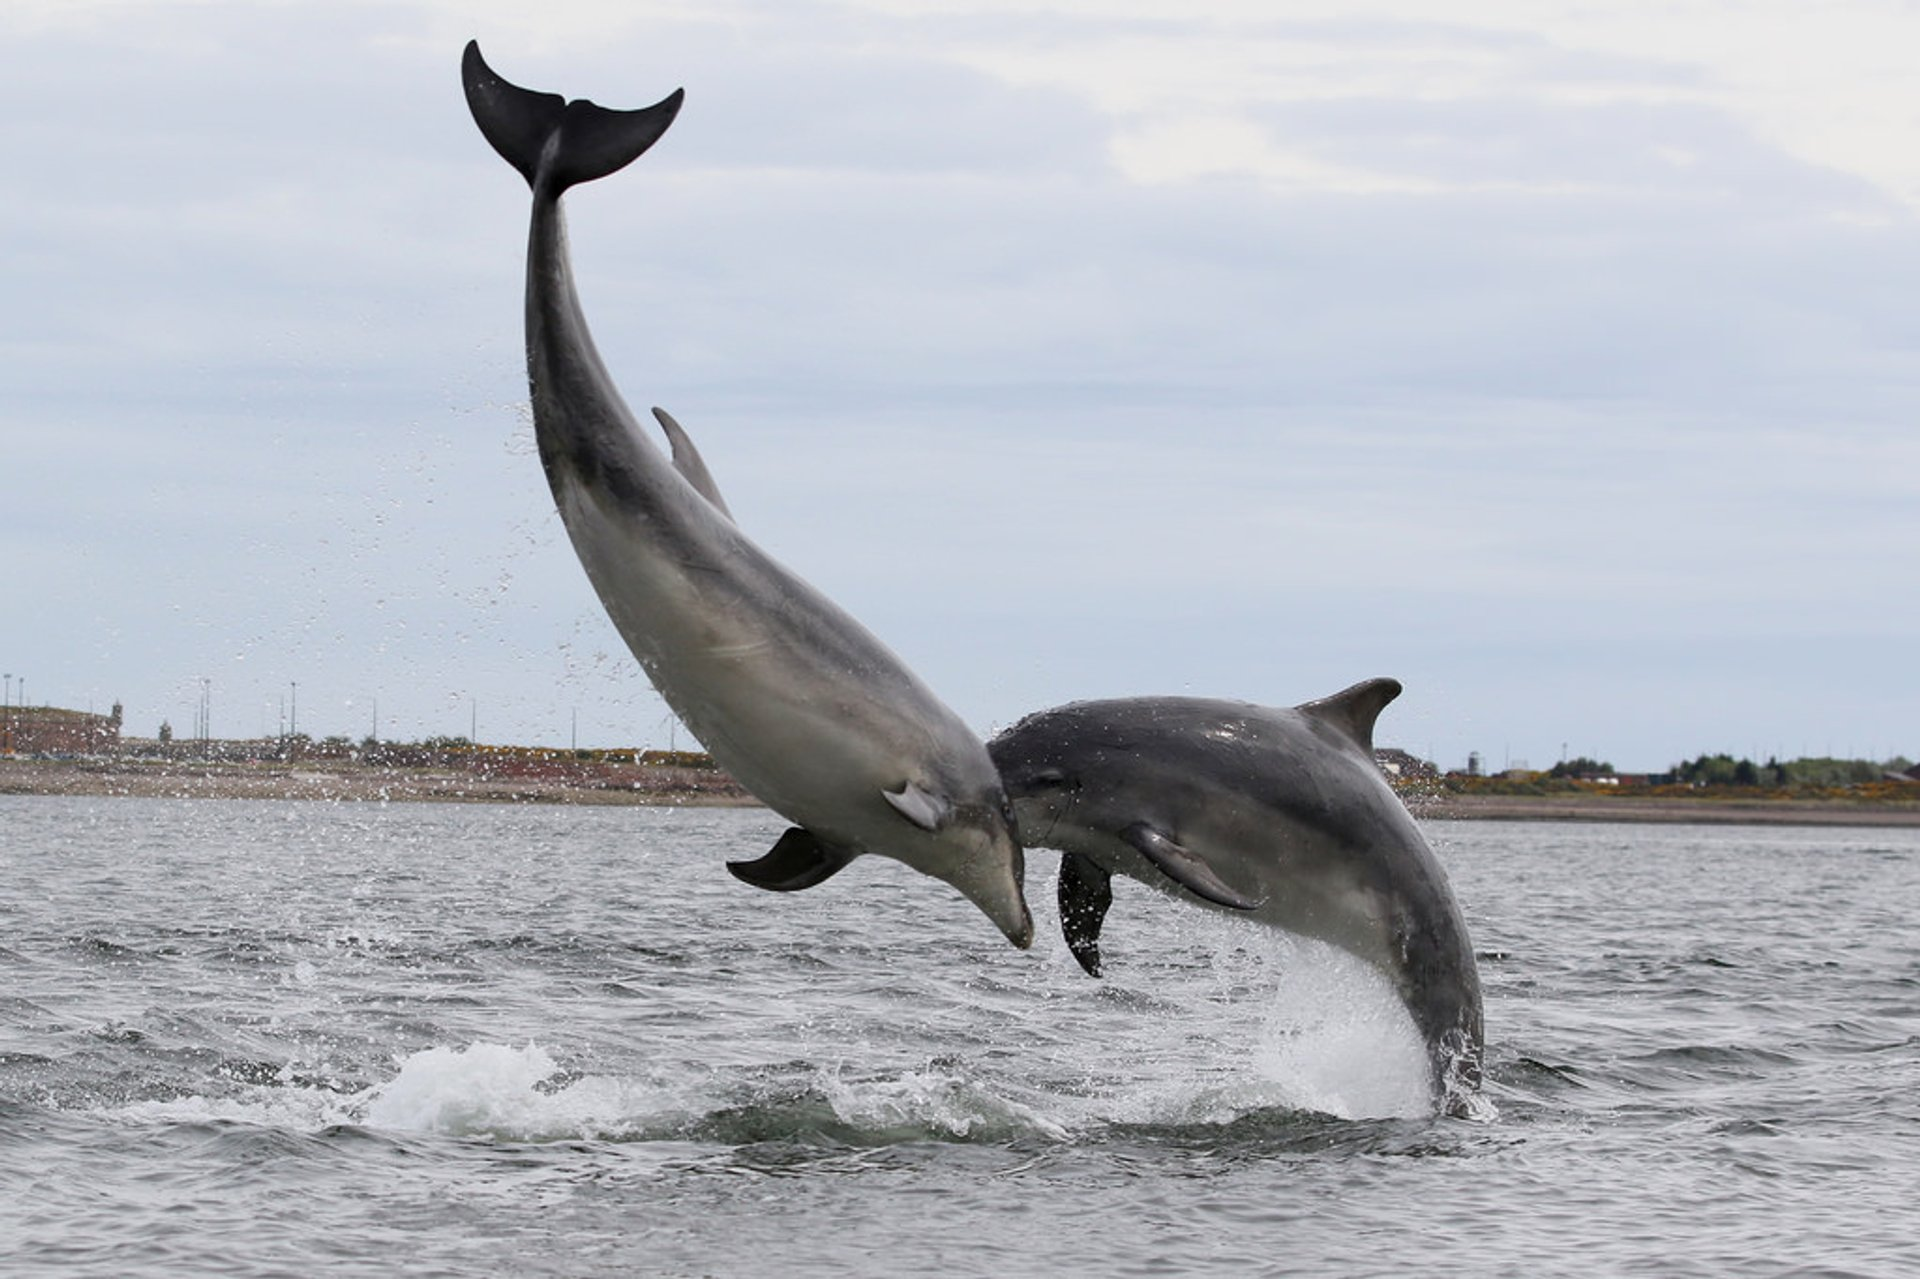 Dolphin and Whale Watching in Scotland in Scotland 2020 - Best Time